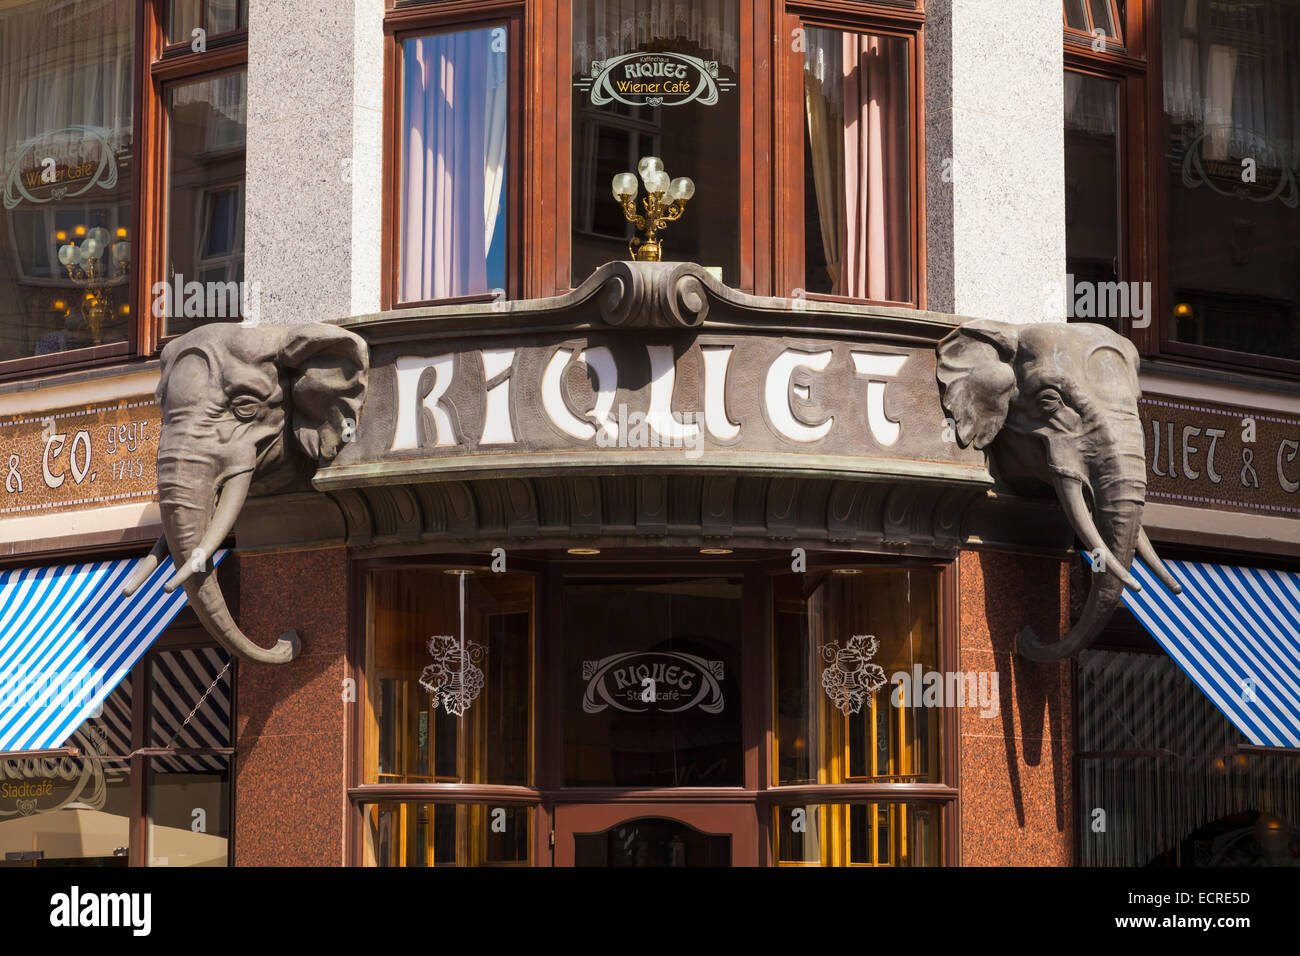 ENTRANCE OF THE RIQUETHAUS, RIQUET CAFE, COFFEE HOUSE, LEIPZIG, SAXONY, GERMANY - Stock Image